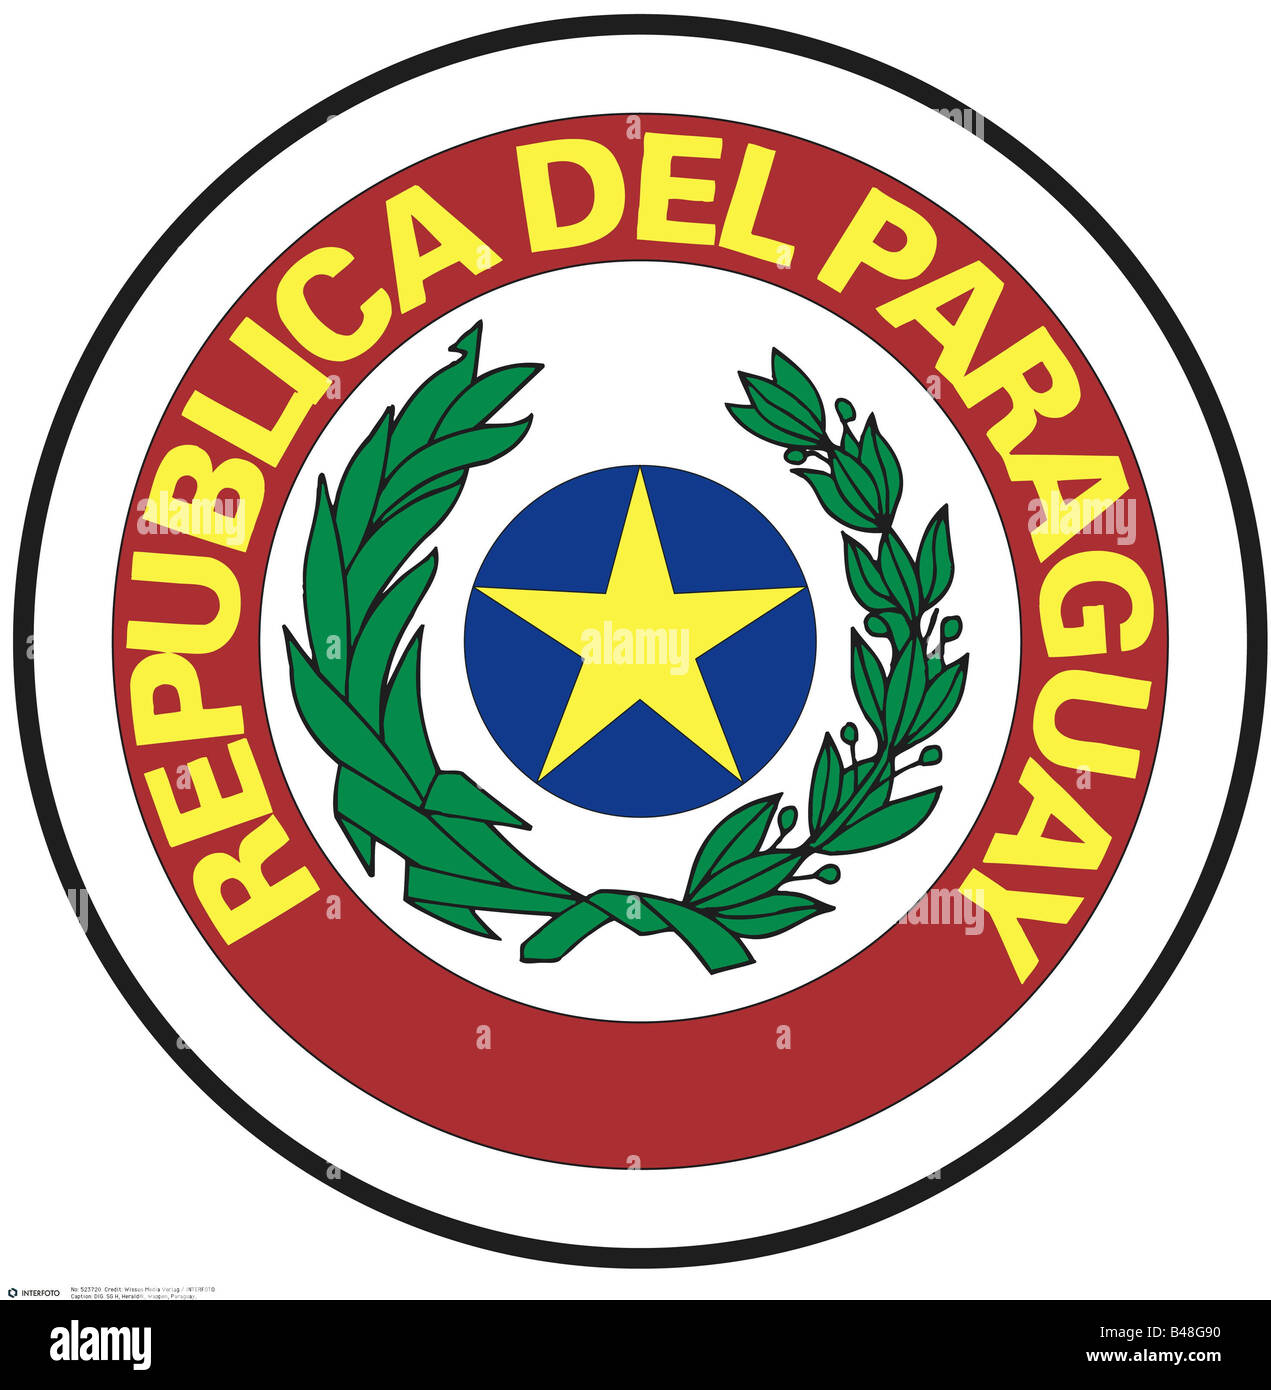 Paraguay flag symbol images symbol and sign ideas paraguay flag symbol images symbol and sign ideas heraldry coat of arms paraguay national coat of buycottarizona